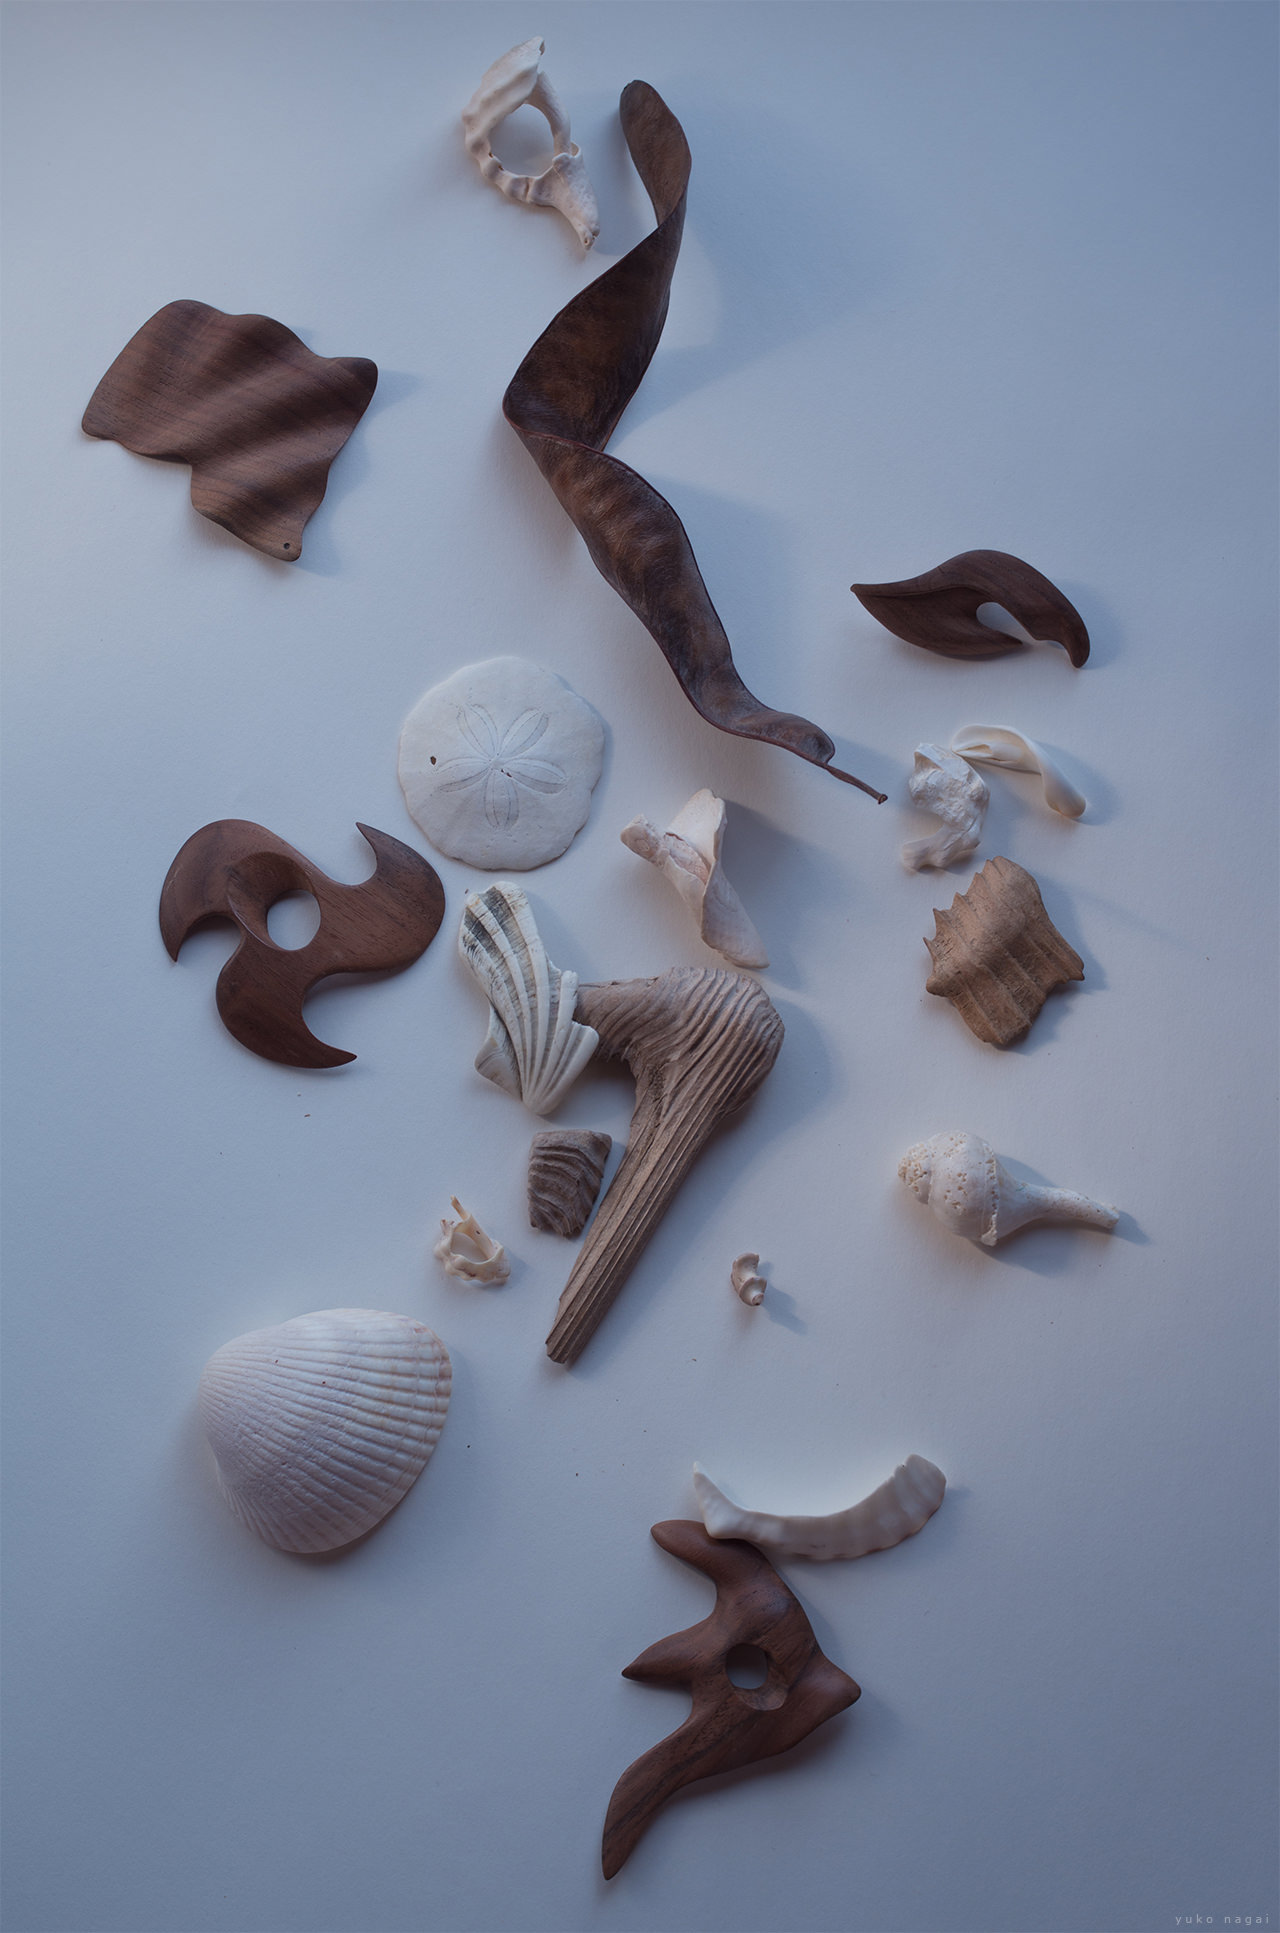 Wood carvings and natural objects.